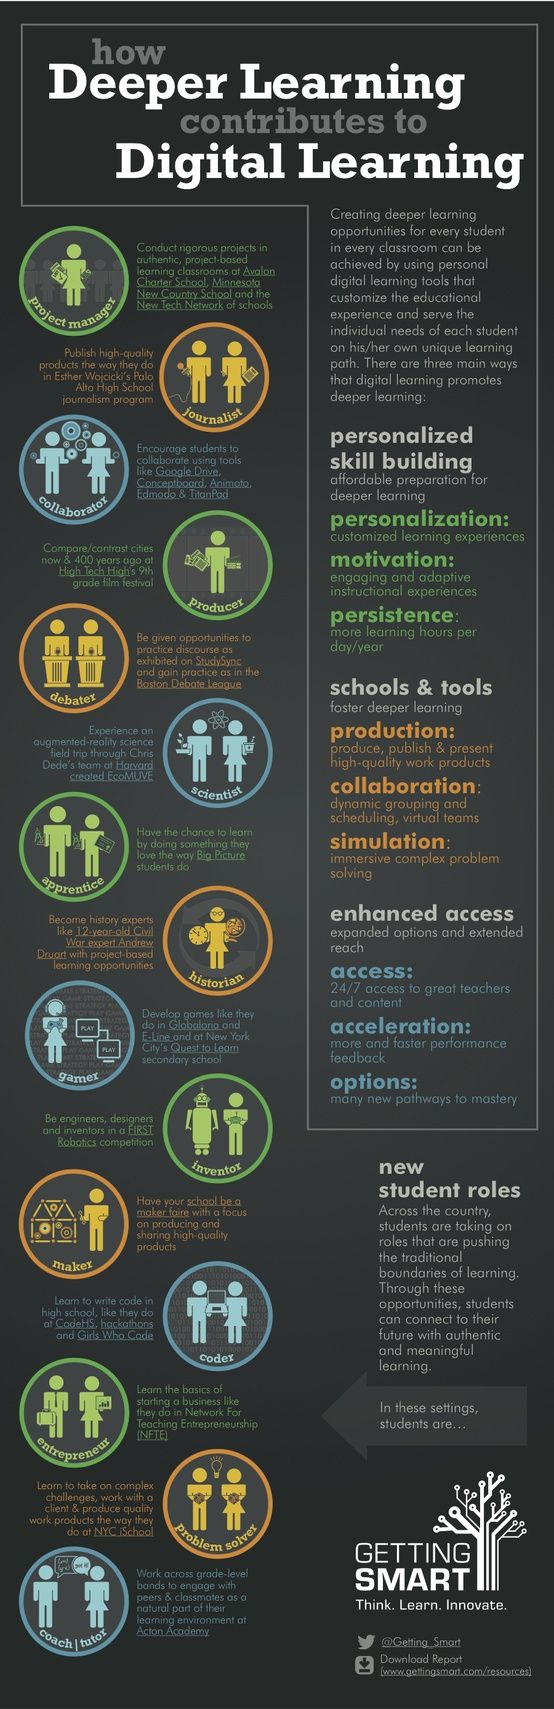 15 Ways Digital Learning Can Lead To Deeper Learning: By embracing the digital world and teaching children in school different things in new digital ways, we can integrate and give hands on learning as a gateway to new careers